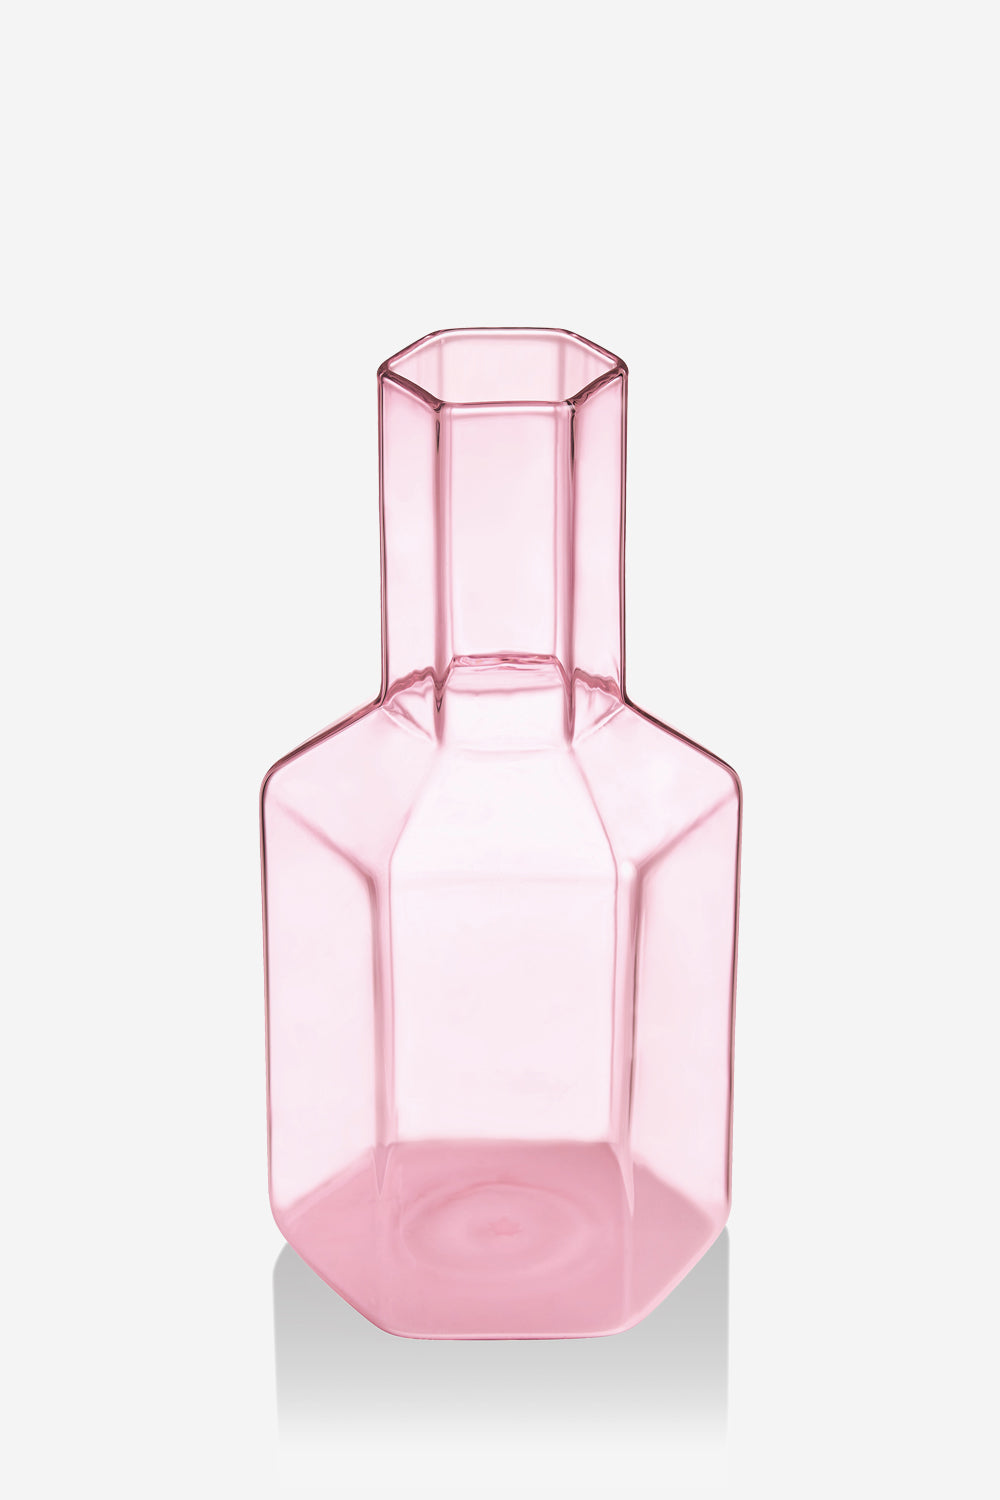 Coucou Pink Carafe